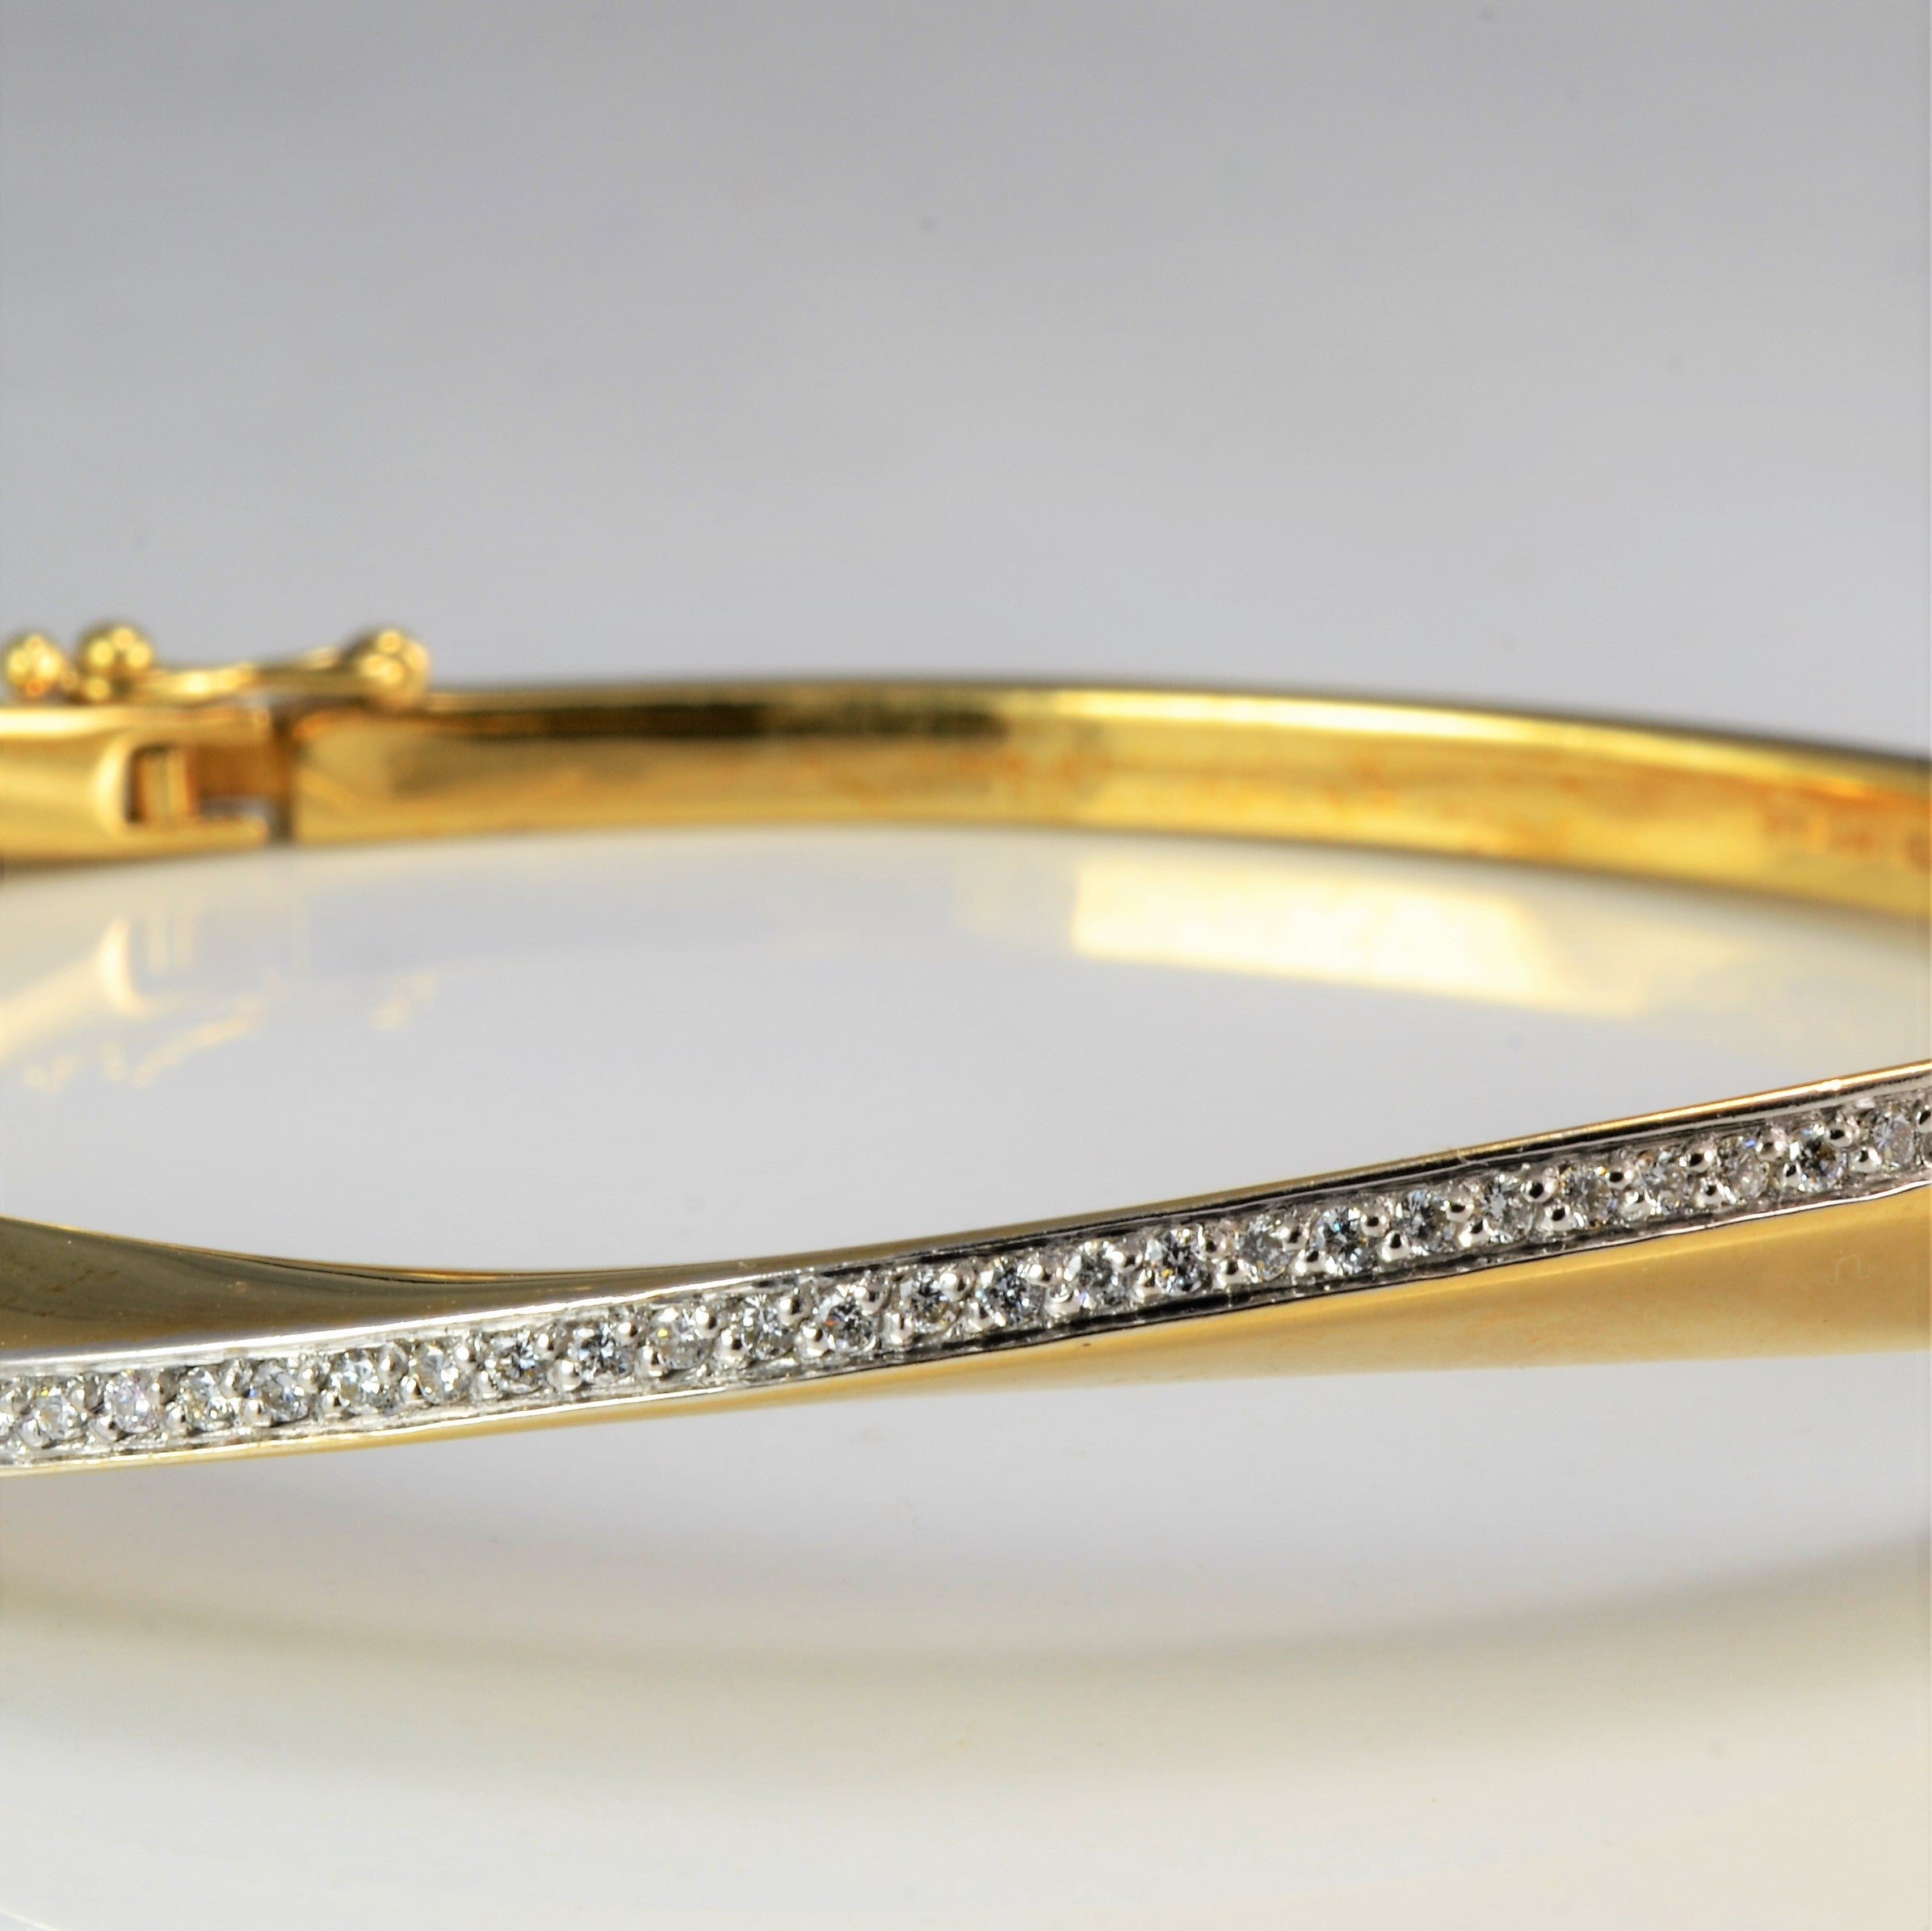 Diamond Wide Bangle Bracelet | 0.75 ctw |